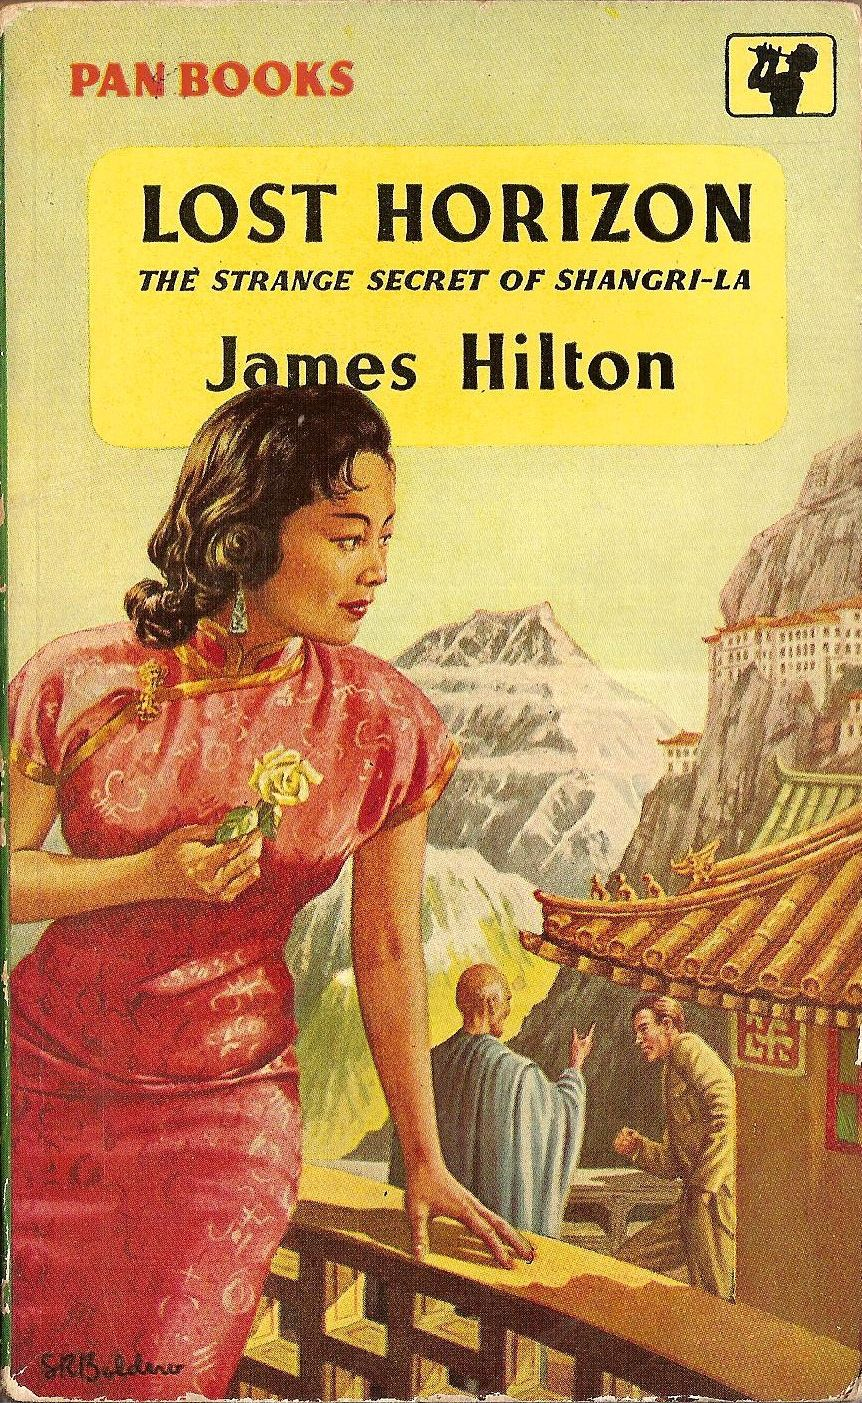 an analysis of hiltons lost horizon The lost horizon summary & study guide includes detailed chapter summaries and analysis, quotes, character descriptions, themes, and more.